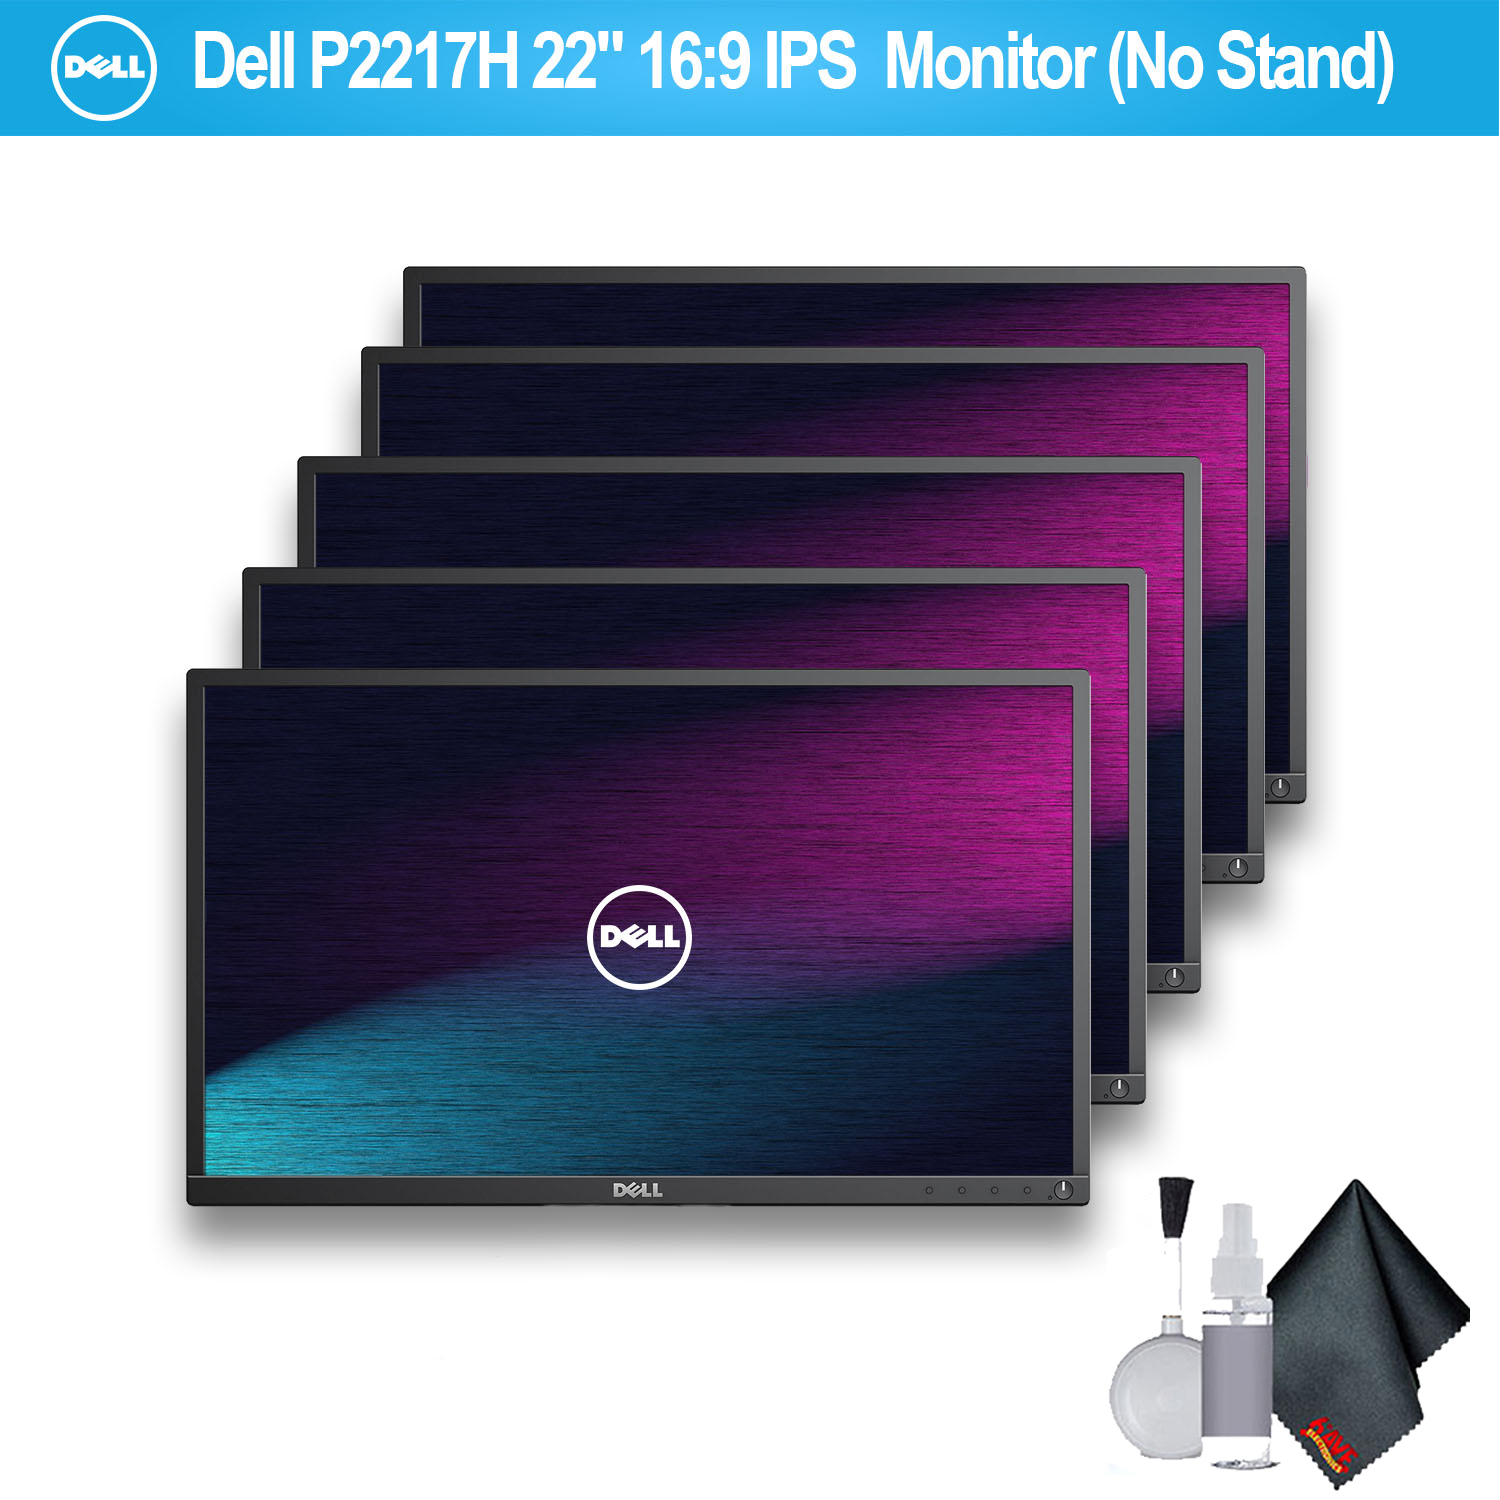 "Dell 22"" 16:9 IPS Monitor (No Stand) - 5 Pack"